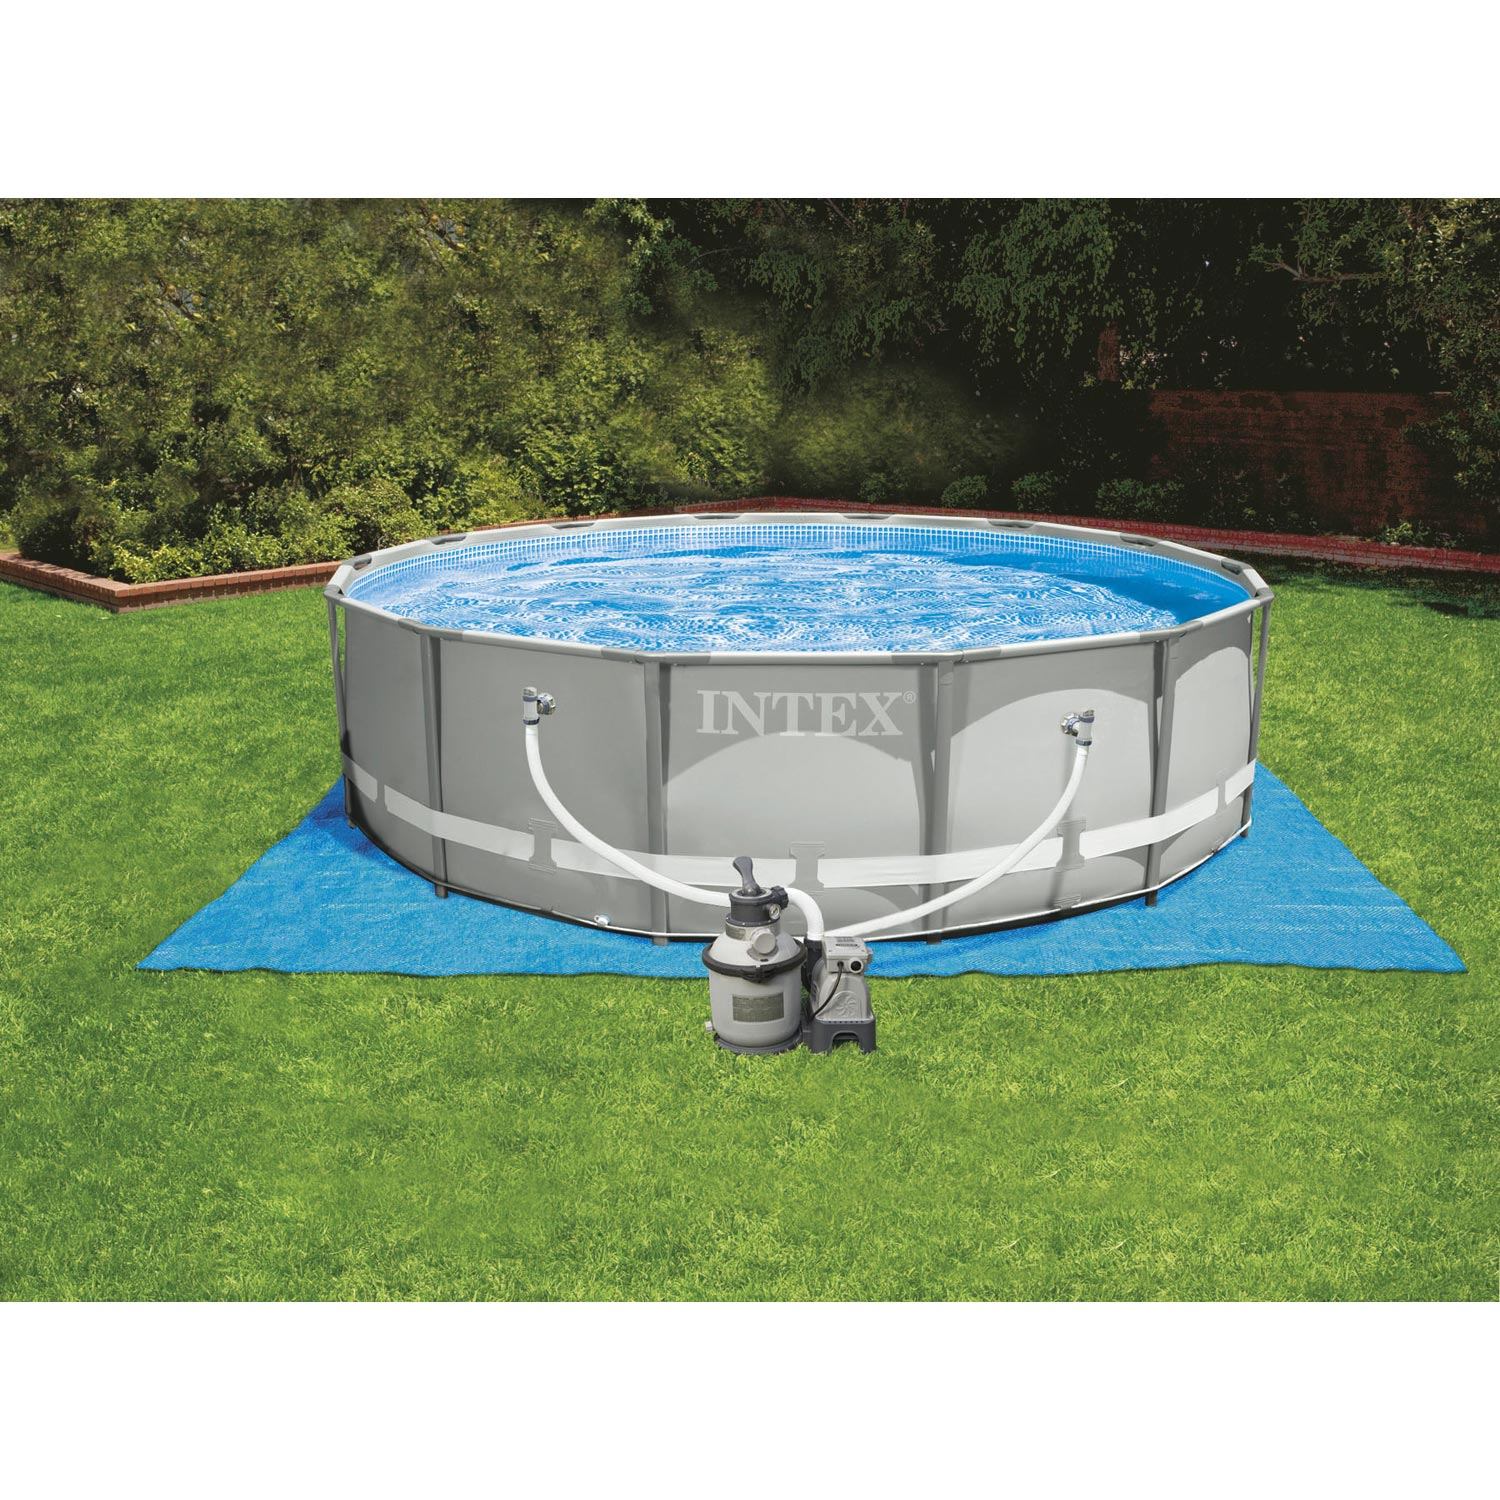 Piscine hors sol autoportante tubulaire ultra frame intex for Piscine demontable intex